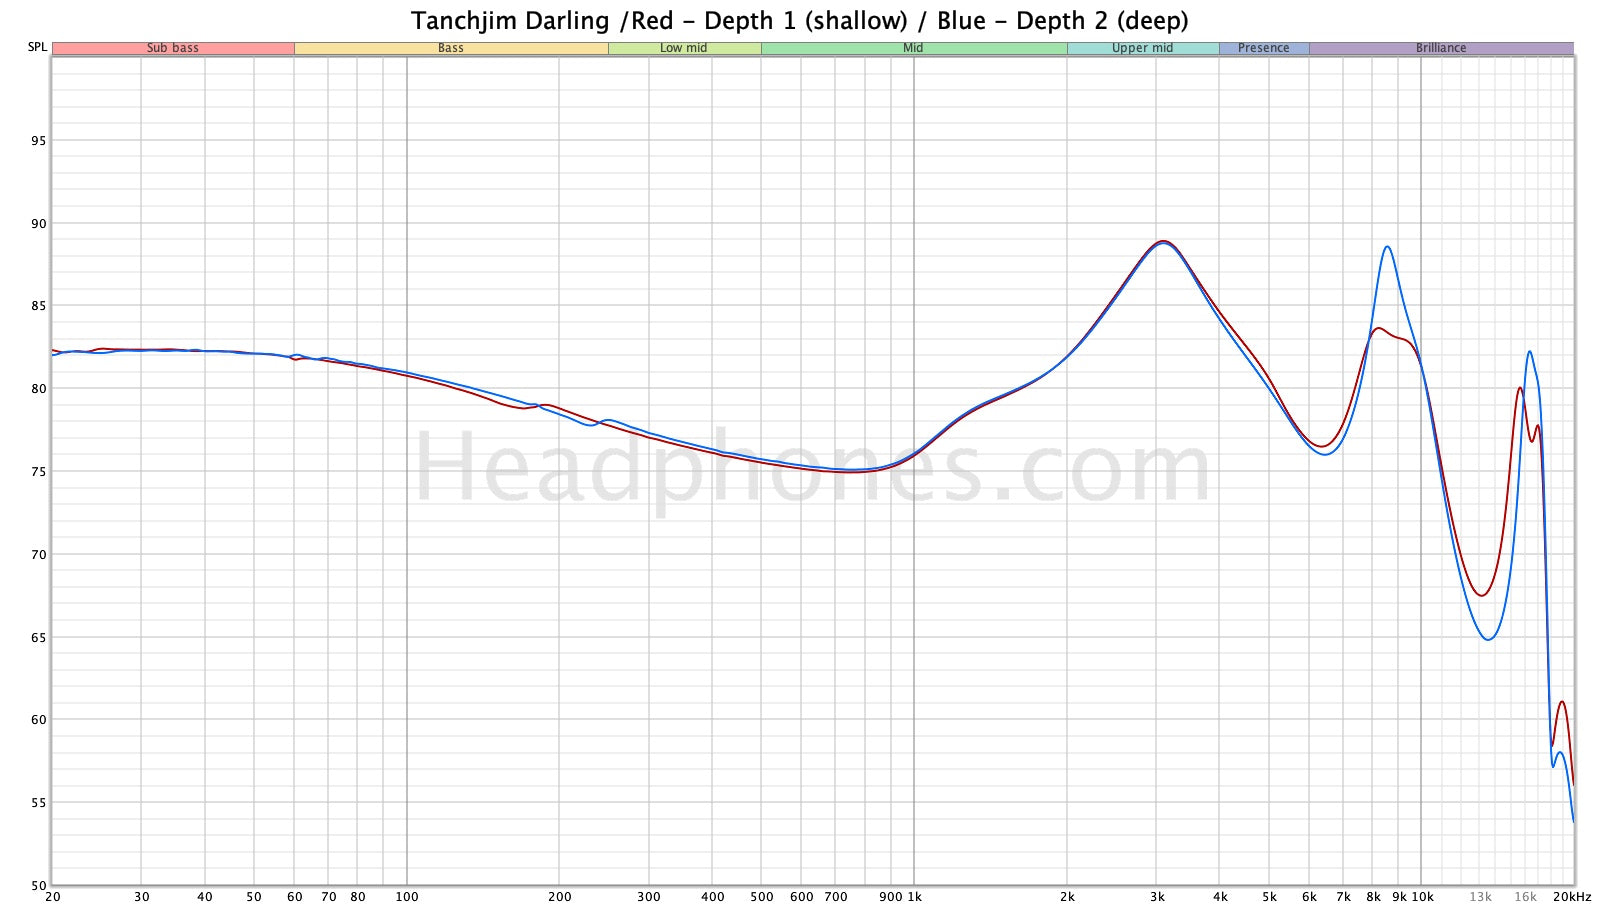 Tanchjim Darling frequency response | Headphones.com